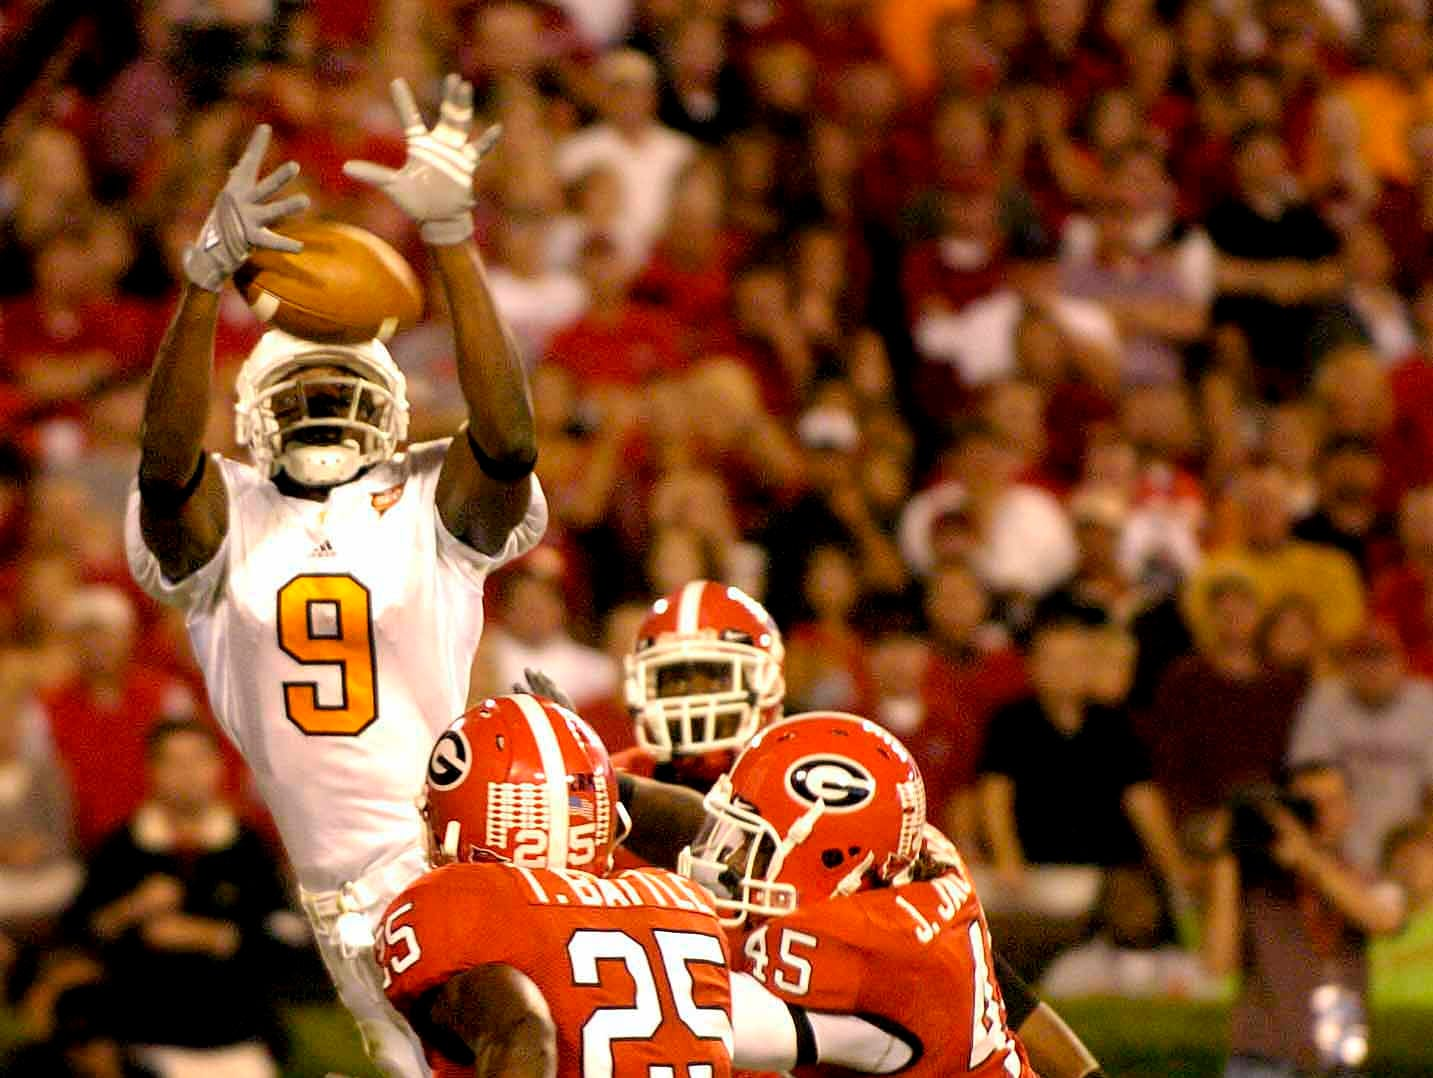 Tennessee wide receiver Bret Smith catches a pass for Tennessee's first touchdown between Georgia defenders Jarvis Jackson (45) and Tra Battle (25) Saturday, Oct. 7, 2006 in Athens, Ga.